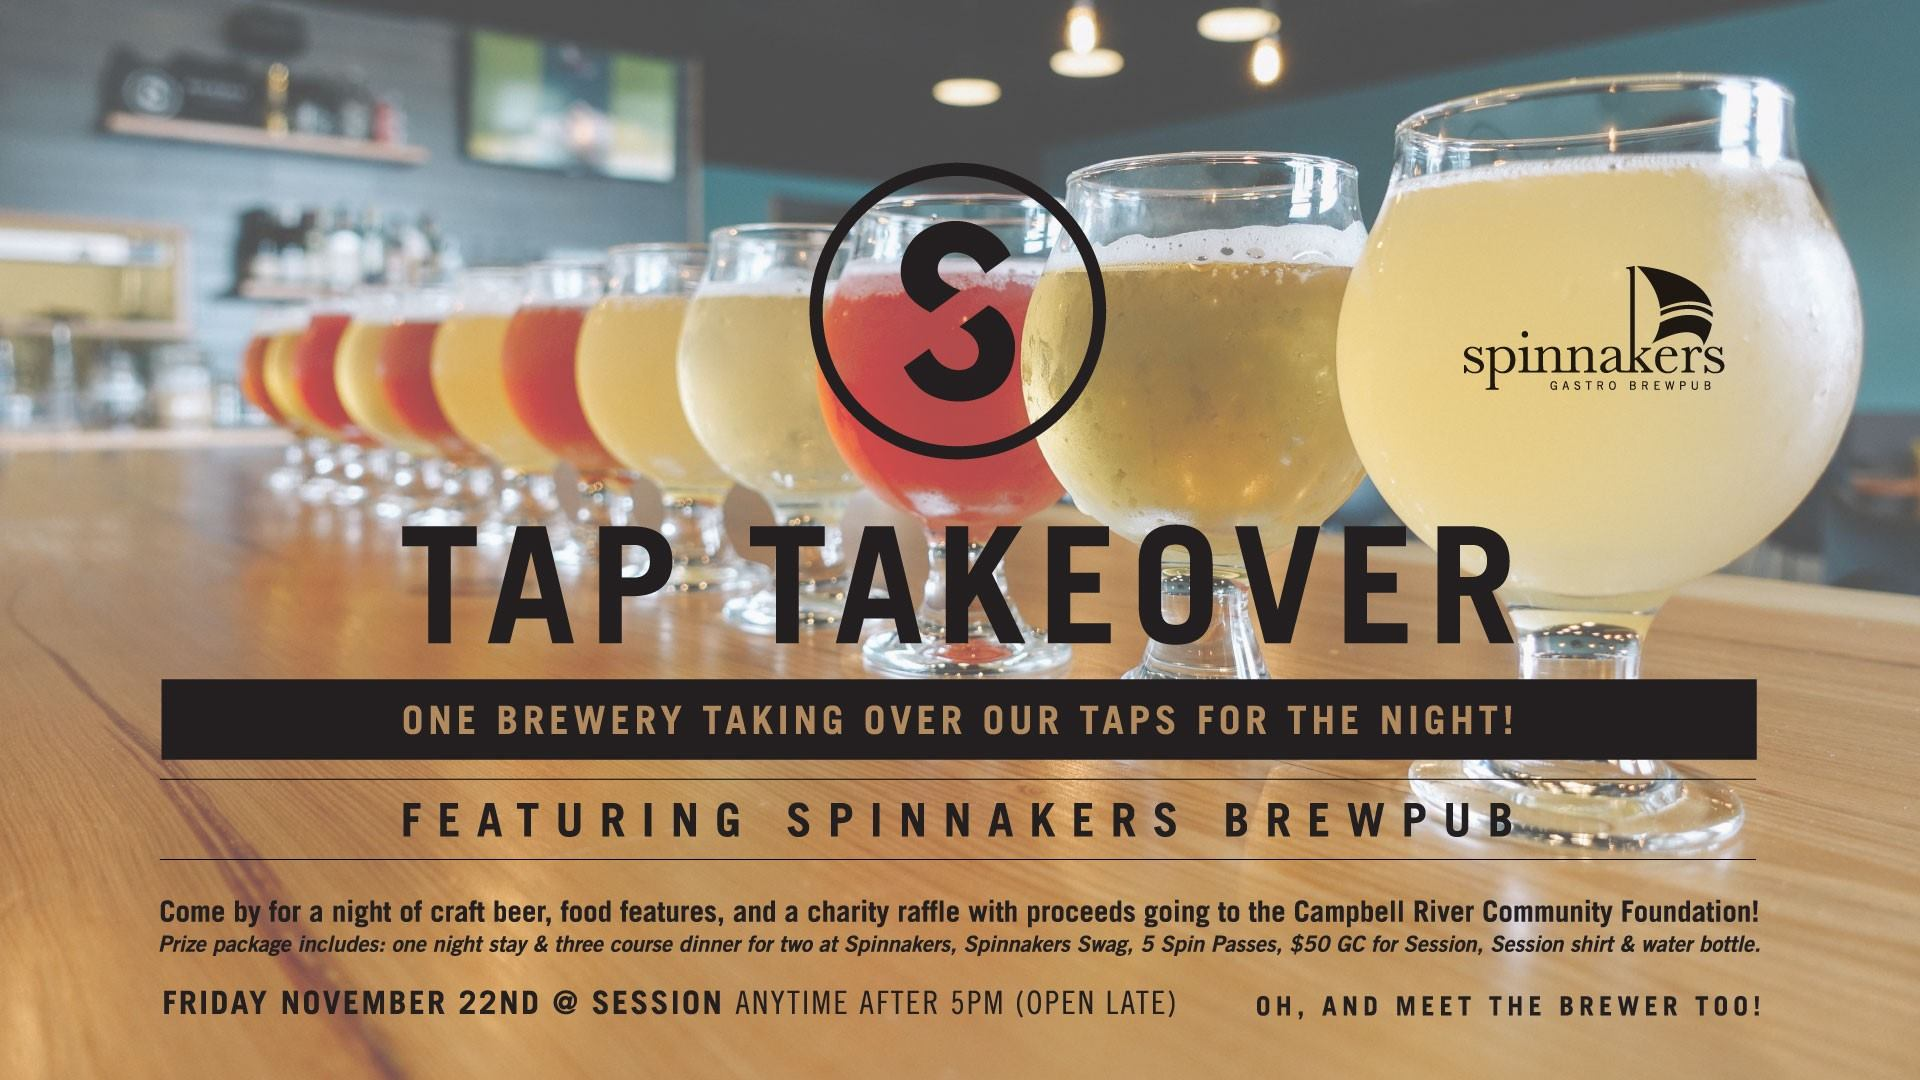 Tap Takeover At Session With Spinnakers Brewpub